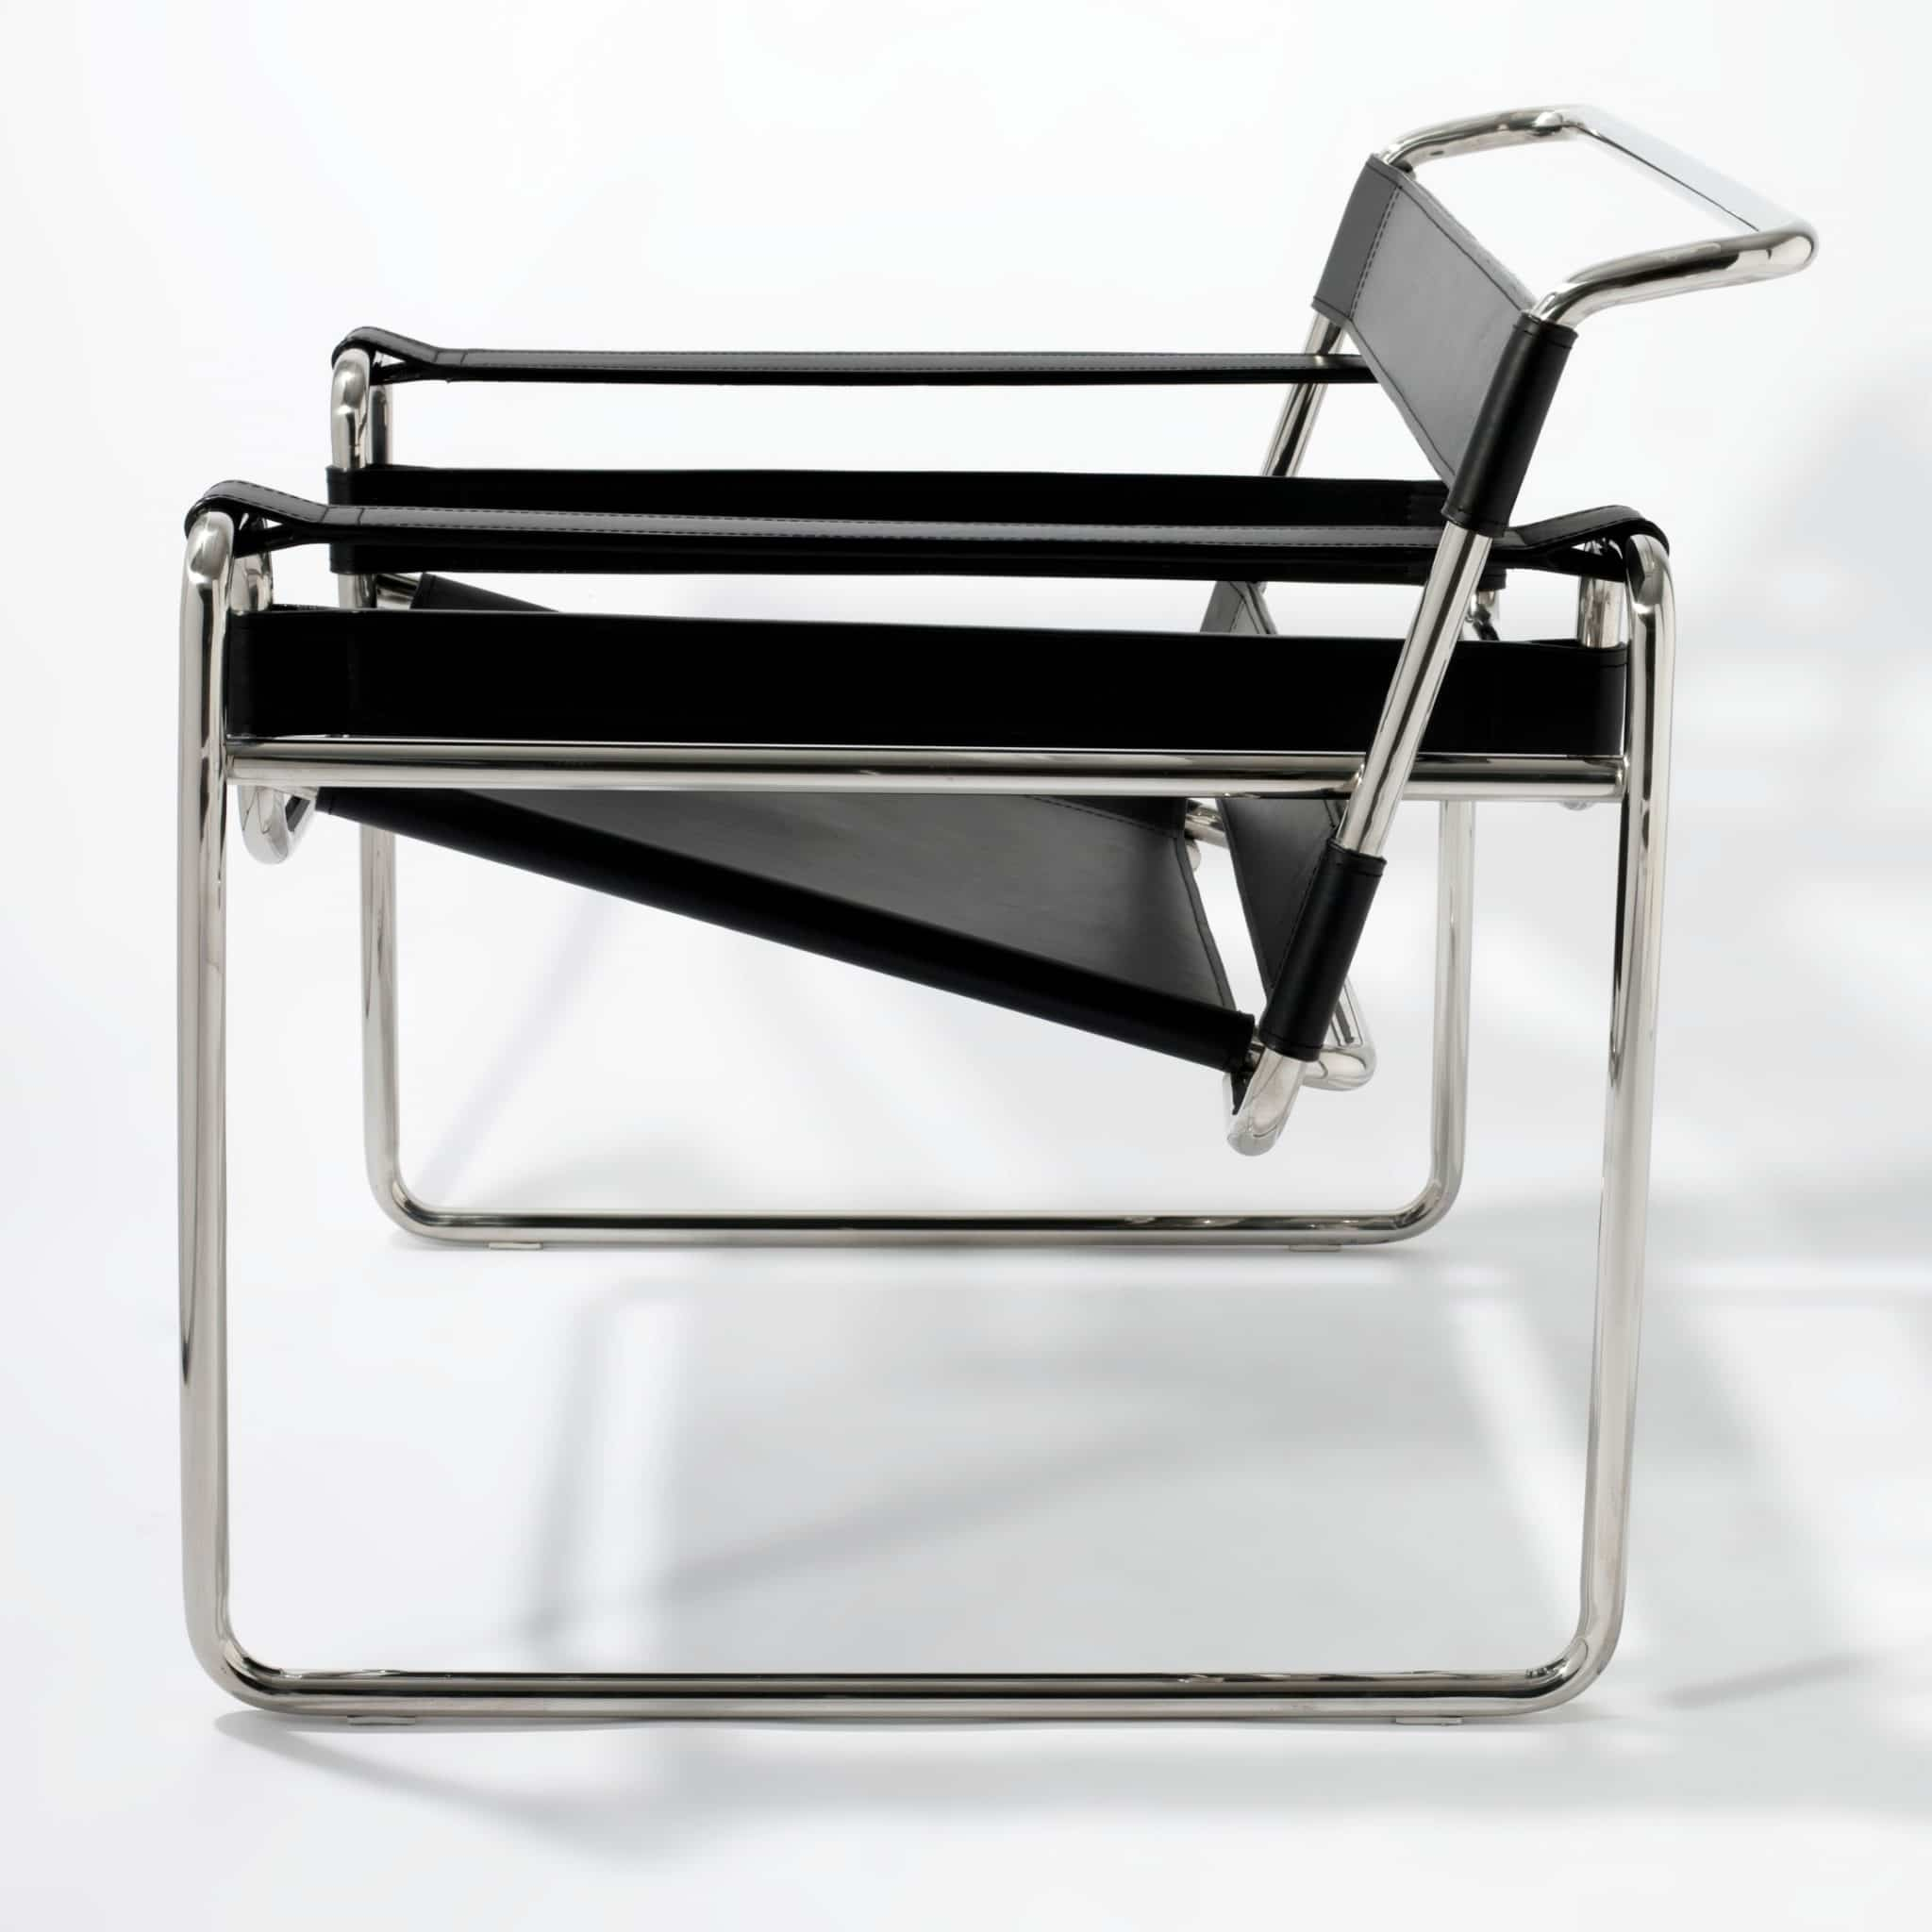 marcel_breuer_wassily_chair_black_pic2